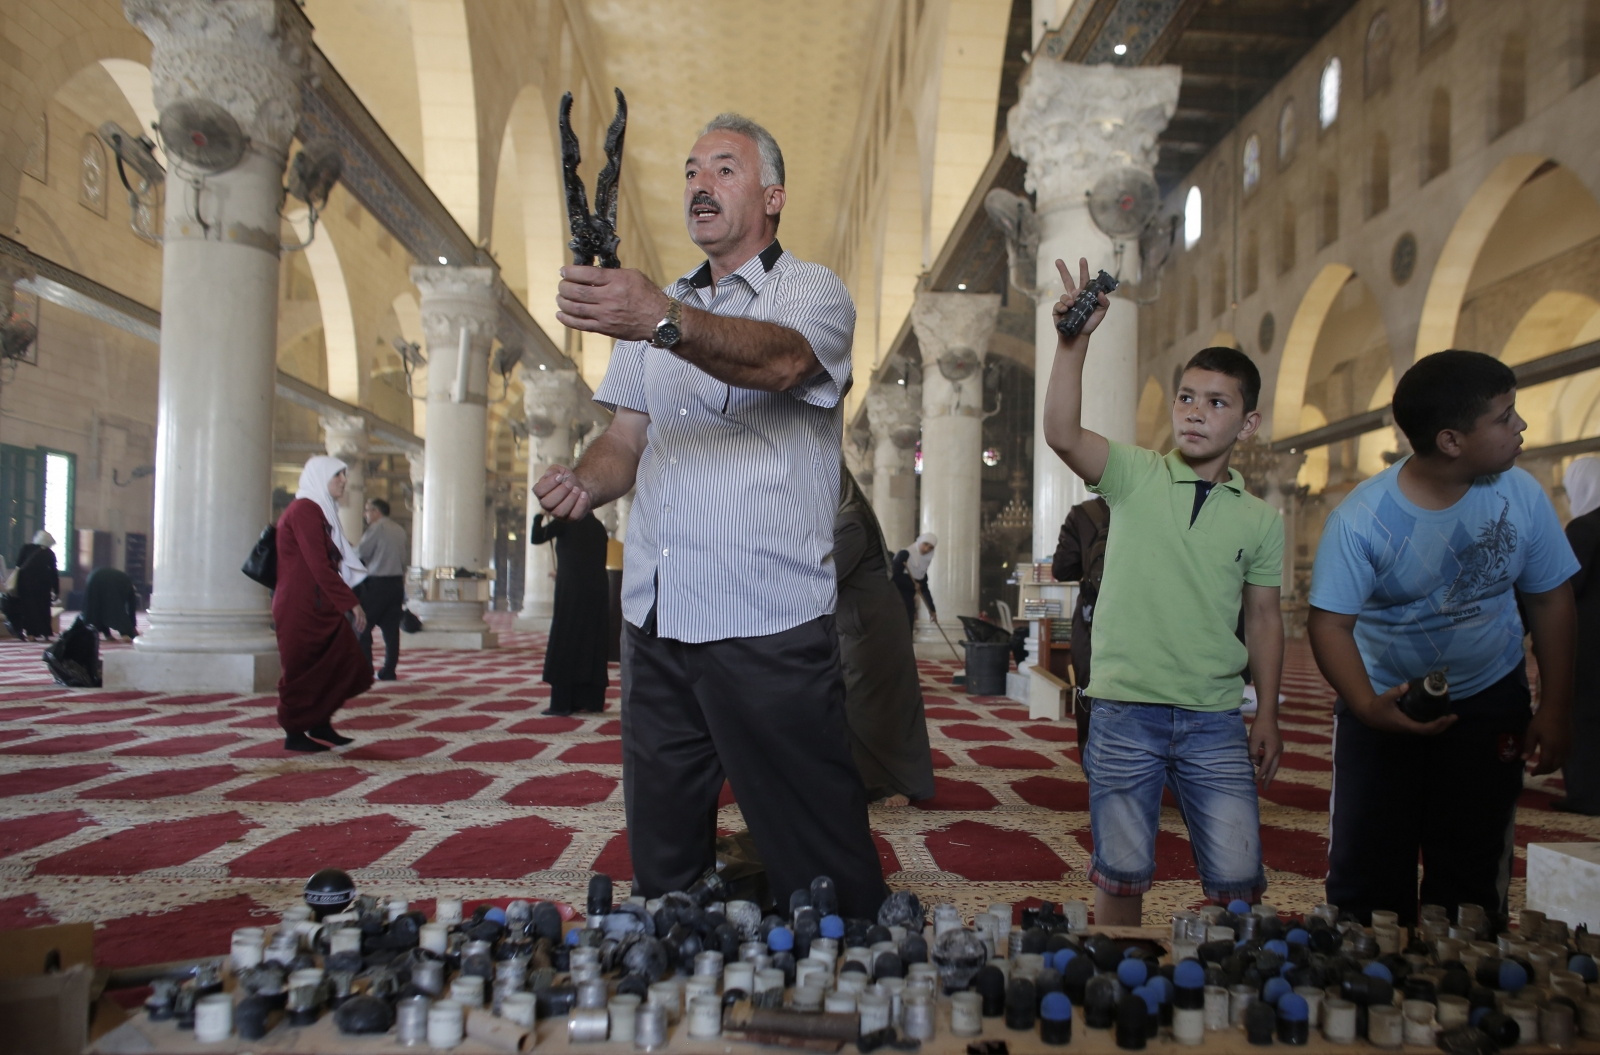 Palestinians display rubber bullets and stun grenades used by Israeli riot police inside the Al-Aqsa Mosque compound, Islam's third most holy site